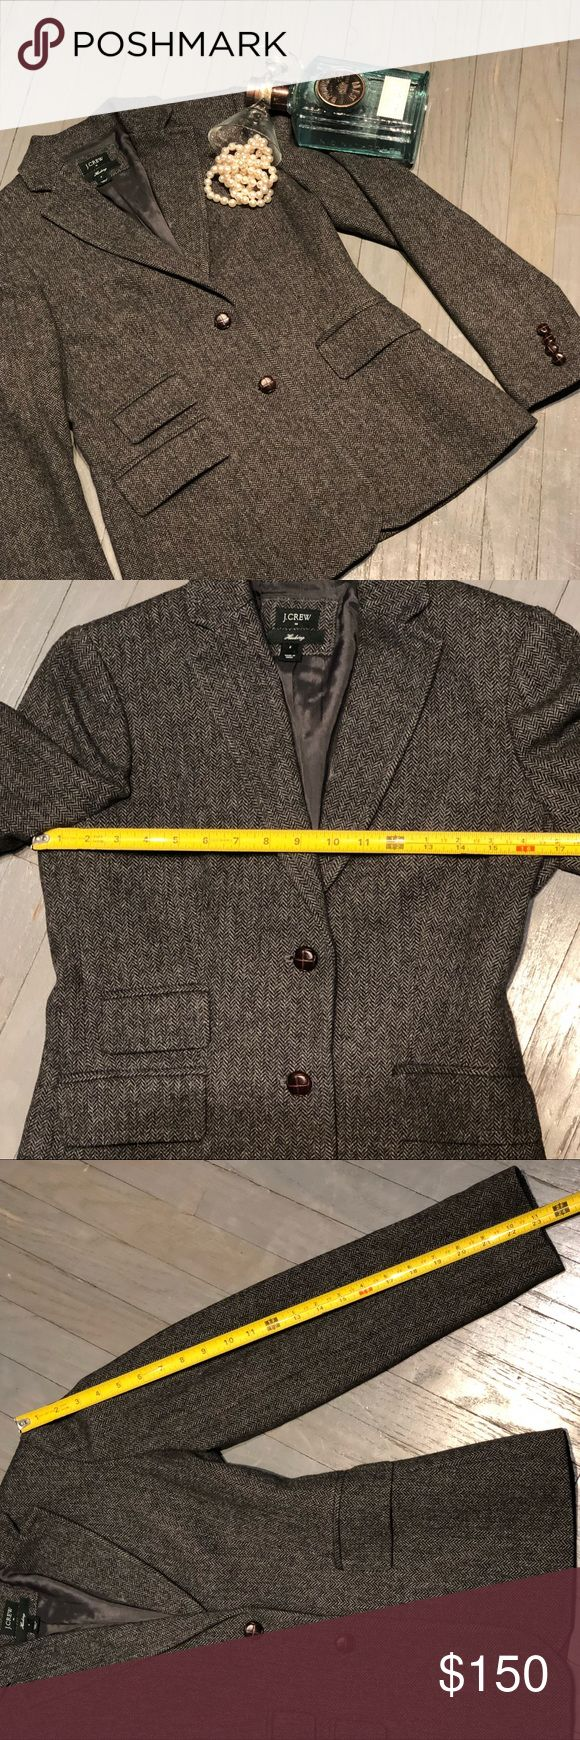 JCrew Hacking Herringbone Menswear Blazer Jacket J Crew Factory Hacking Jacket In Black and Grey Herringbone. Lapel Collar. Hits at Hip. Two Leatherette Covered Button Close. Four Functional Leatherette Buttons at Cuffons. Fully Lined. Center Back Vent. Three Outside Flap Pockets. One Outside Breast Pocket. Menswear Inspired. Measurements in pictures. Excellent condition 55% Wool 45% Polyester STYLE 98609 J. Crew Jackets & Coats Blazers